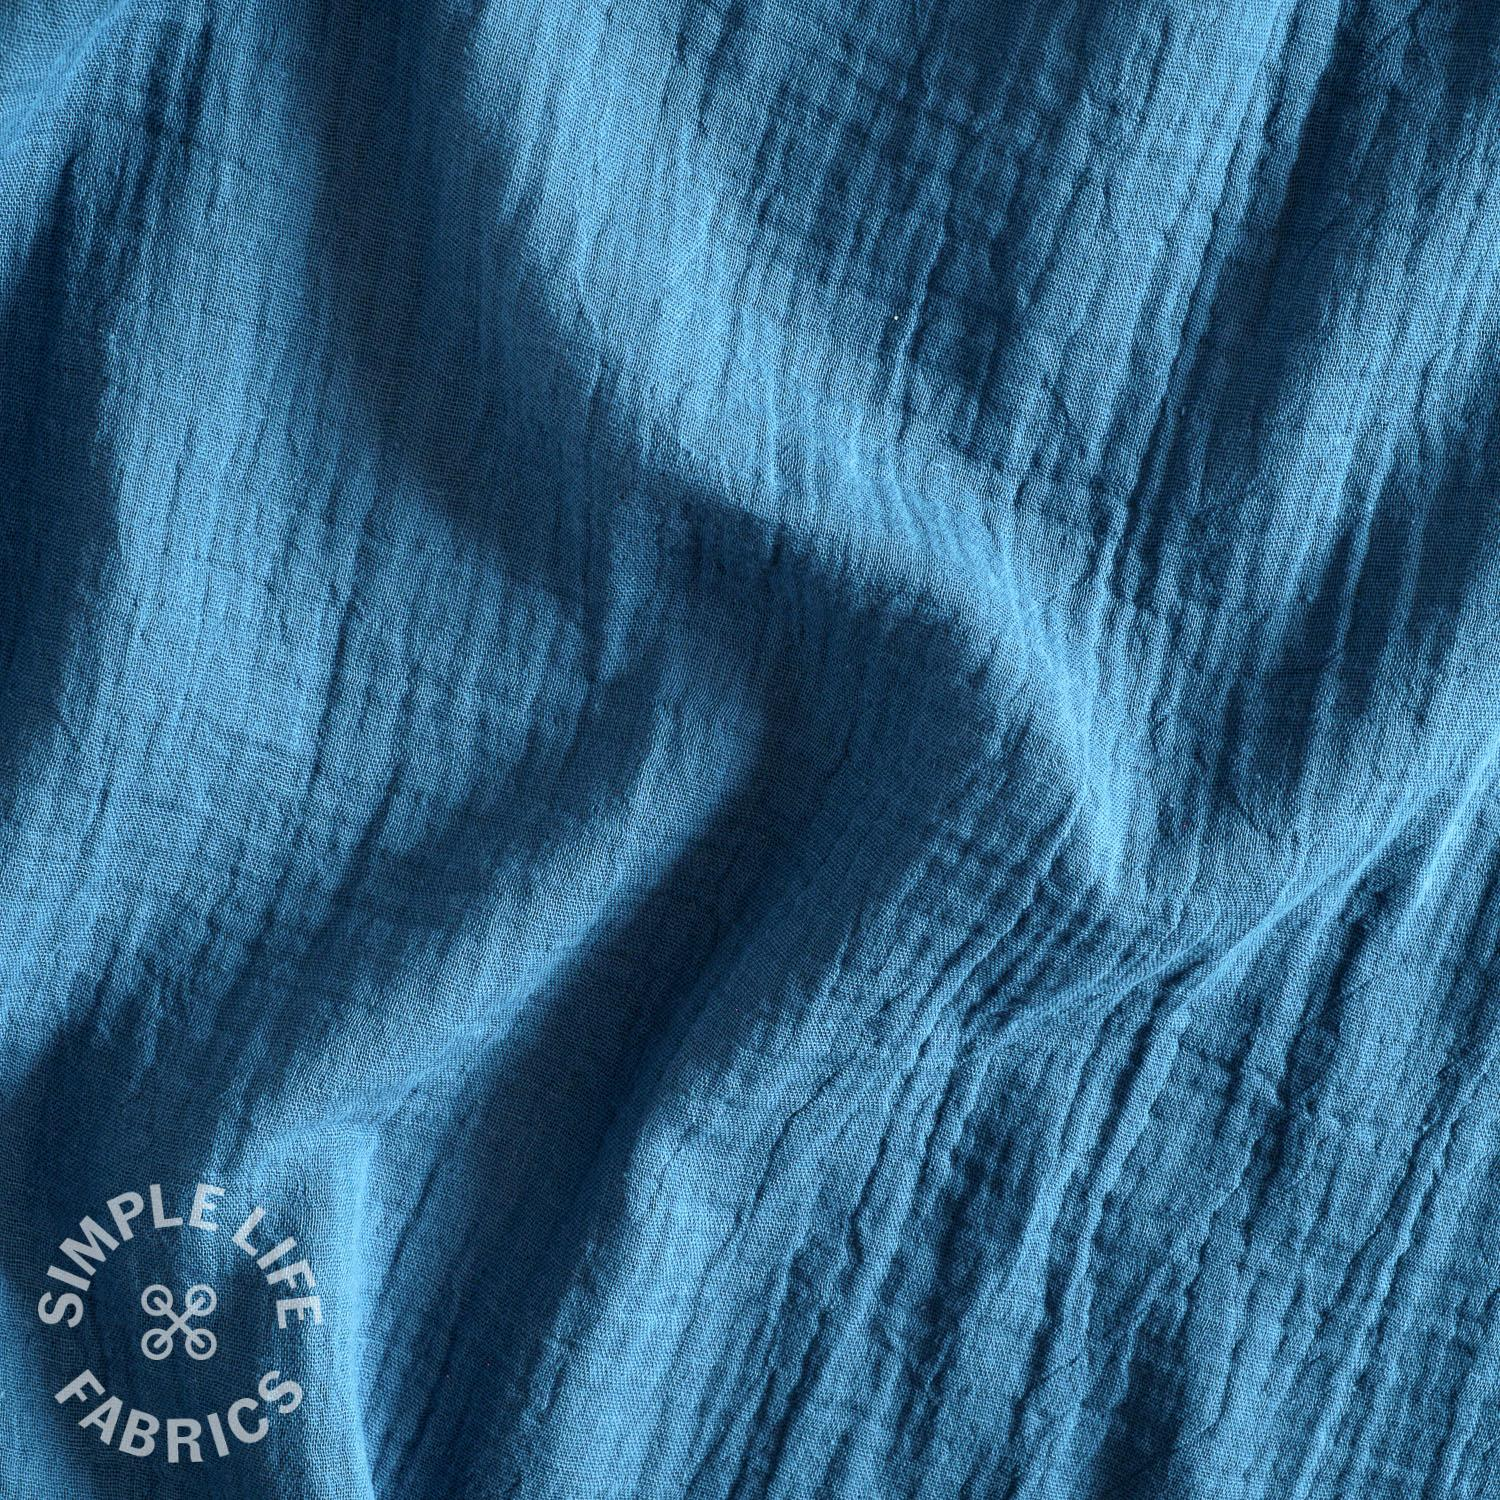 French Navy double gauze organic cotton fabric